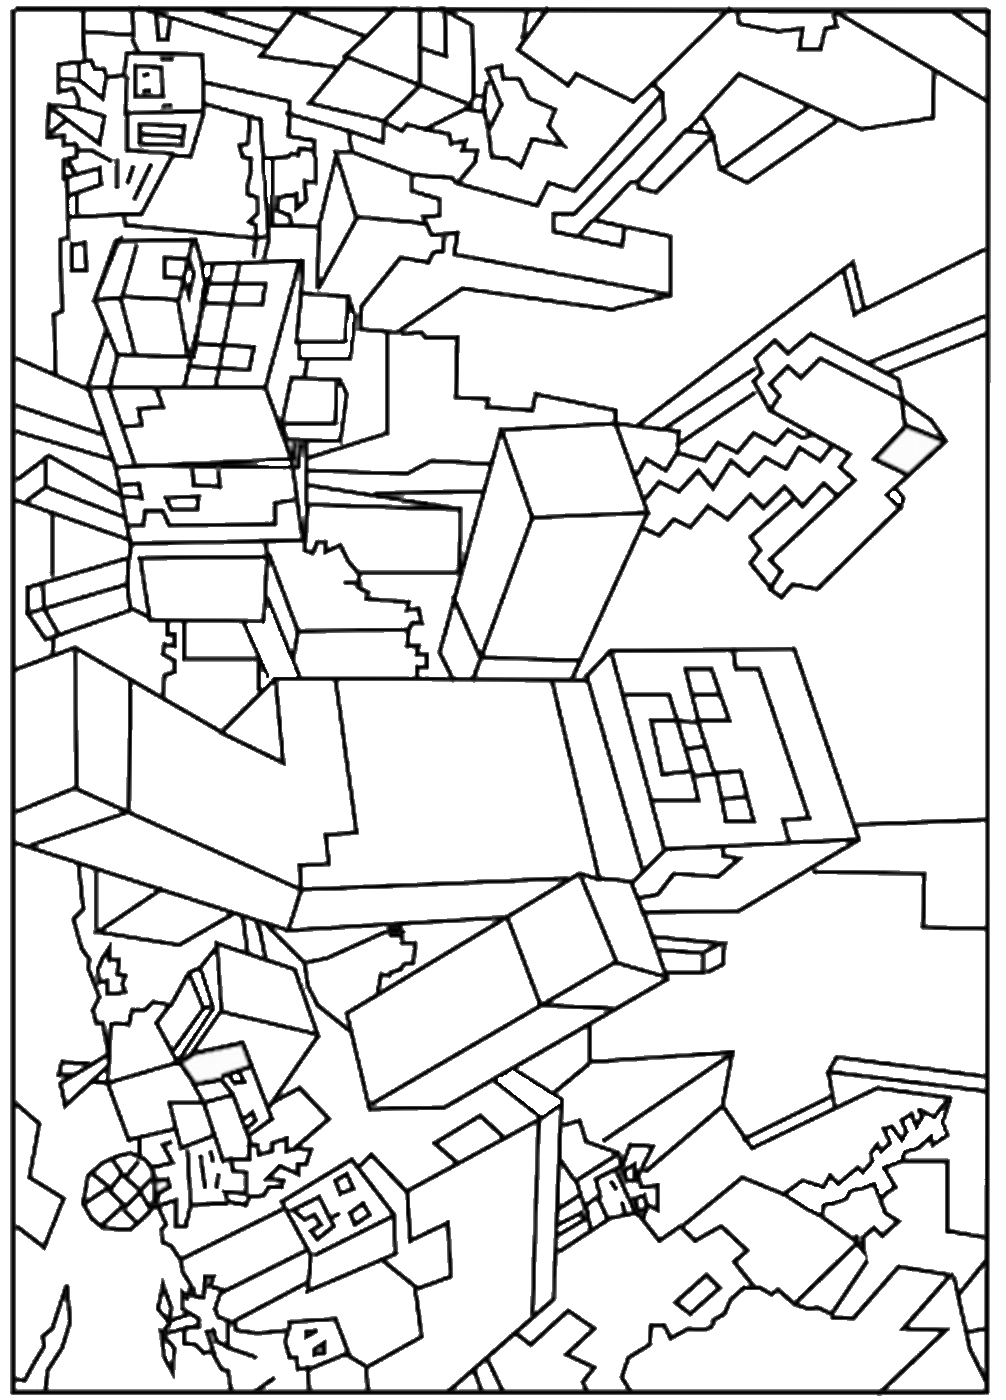 coloring minecraft worksheets 13 coloring pages of minecraft print color craft minecraft worksheets coloring